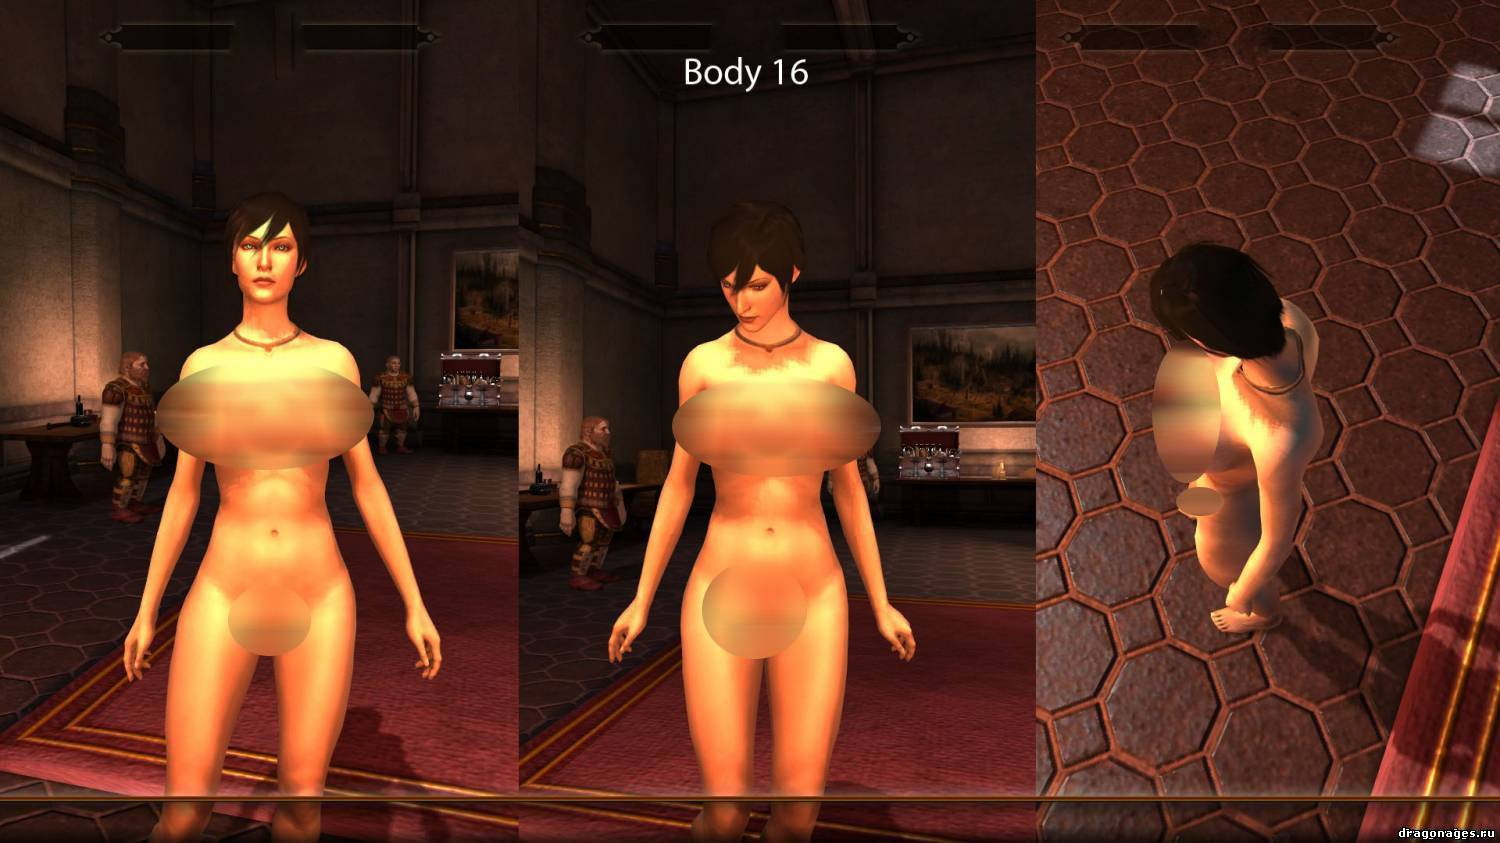 The darkness 2 nude mod naked image